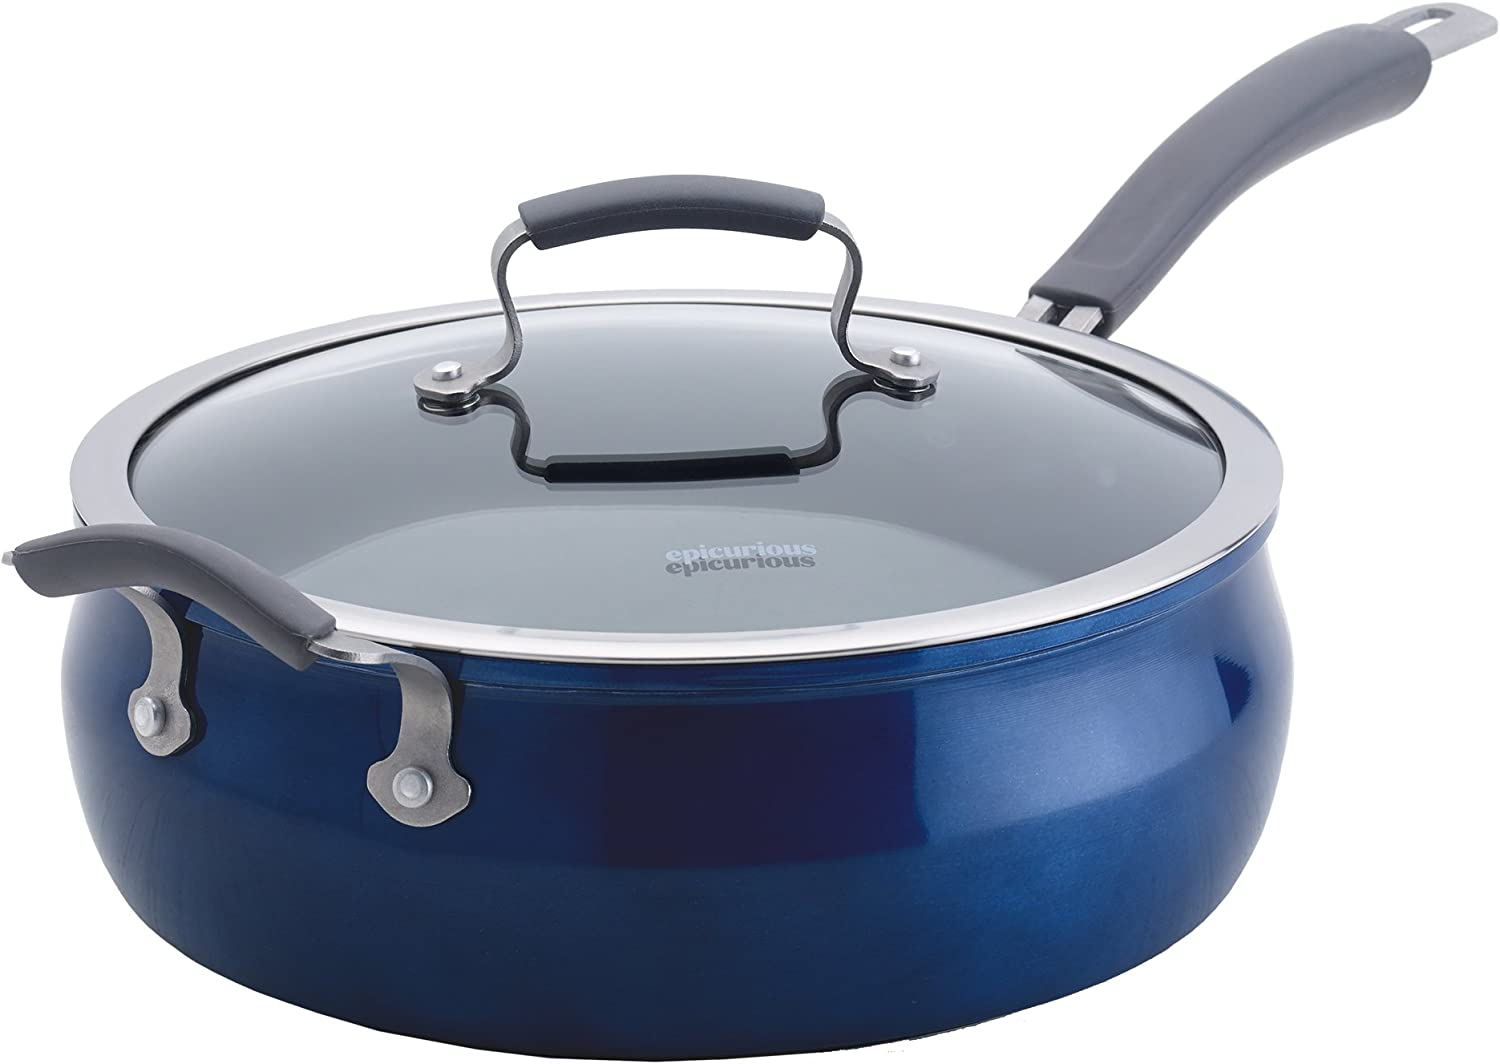 Epicurious Cookware Collection- Dishwasher Safe Oven Safe, Nonstick Aluminum 6 Quart Arctic Blue Covered Jumbo Cooker